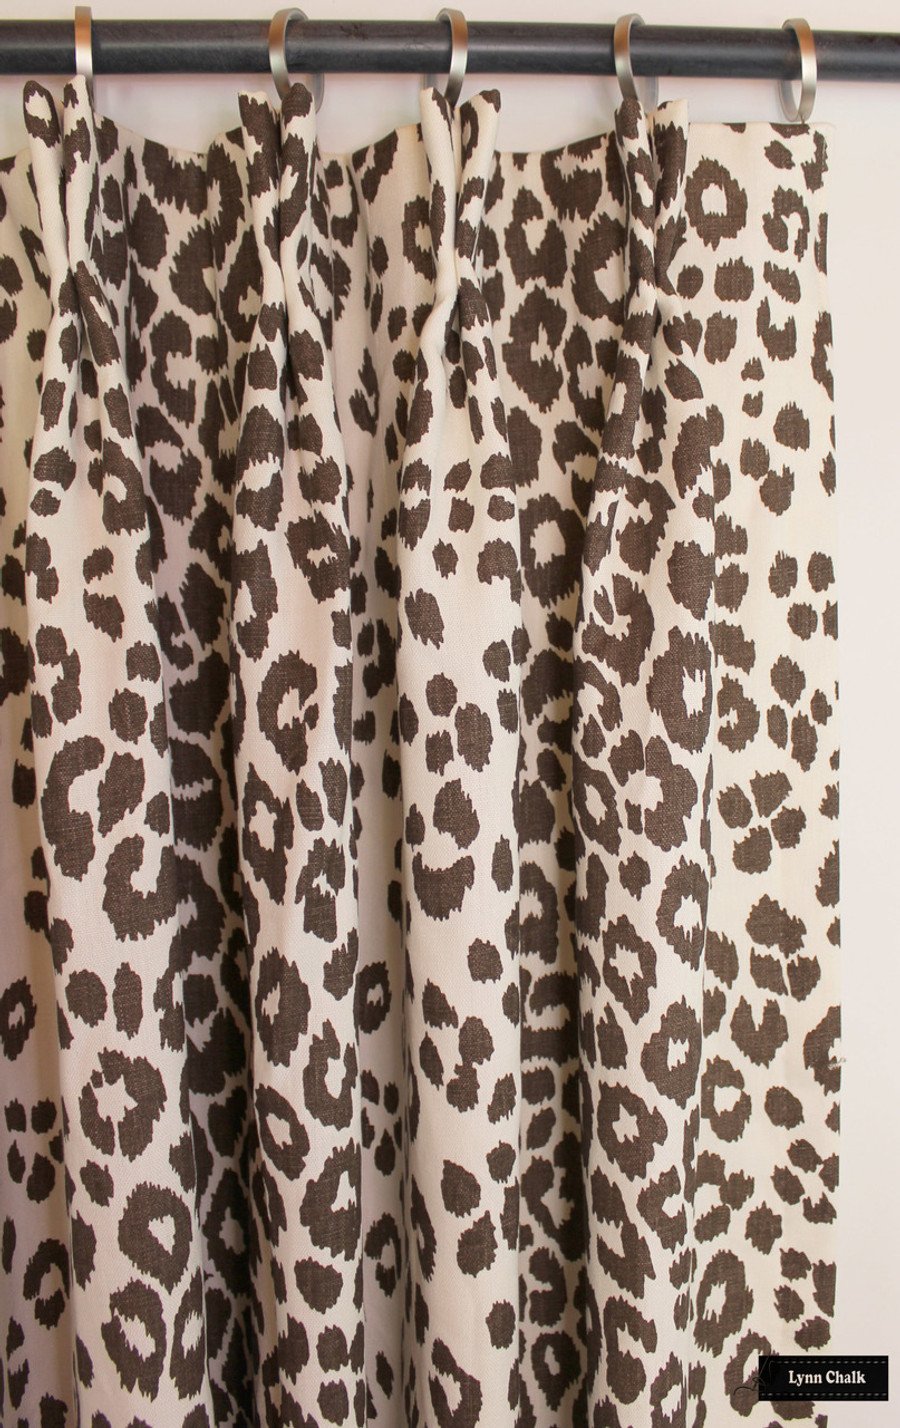 How Many Yards Of Fabric For Curtains On Sale 65 Off 3 Yards Schumacher Iconic Leopard Brown Fabric Remnant 3 Yard Continuous Piece 176450